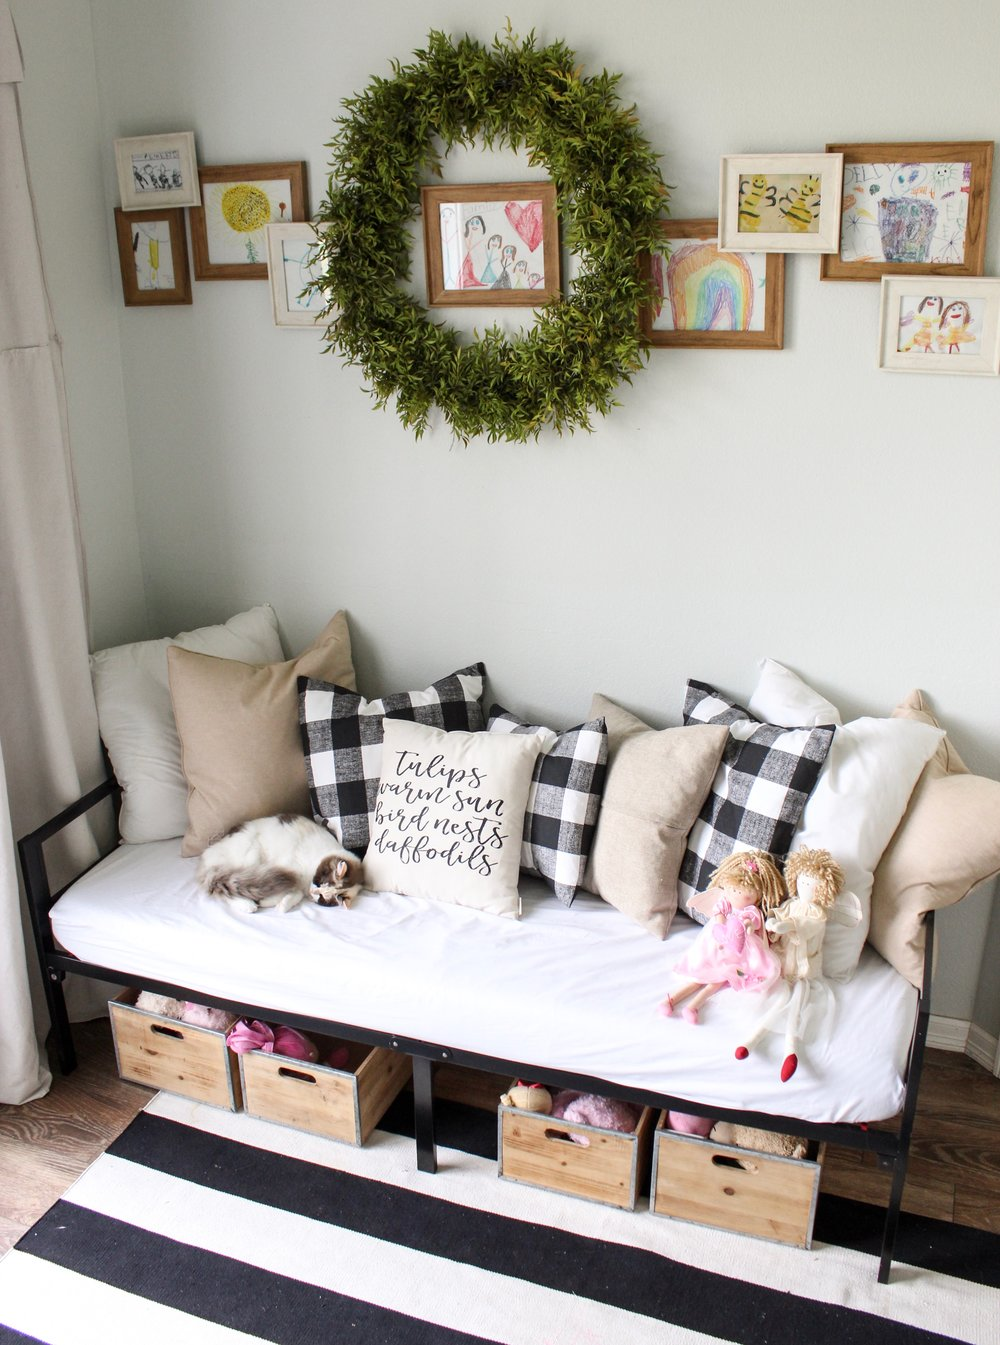 CottonStem.com farmhouse playroom daybed black and white kids drawings.jpeg